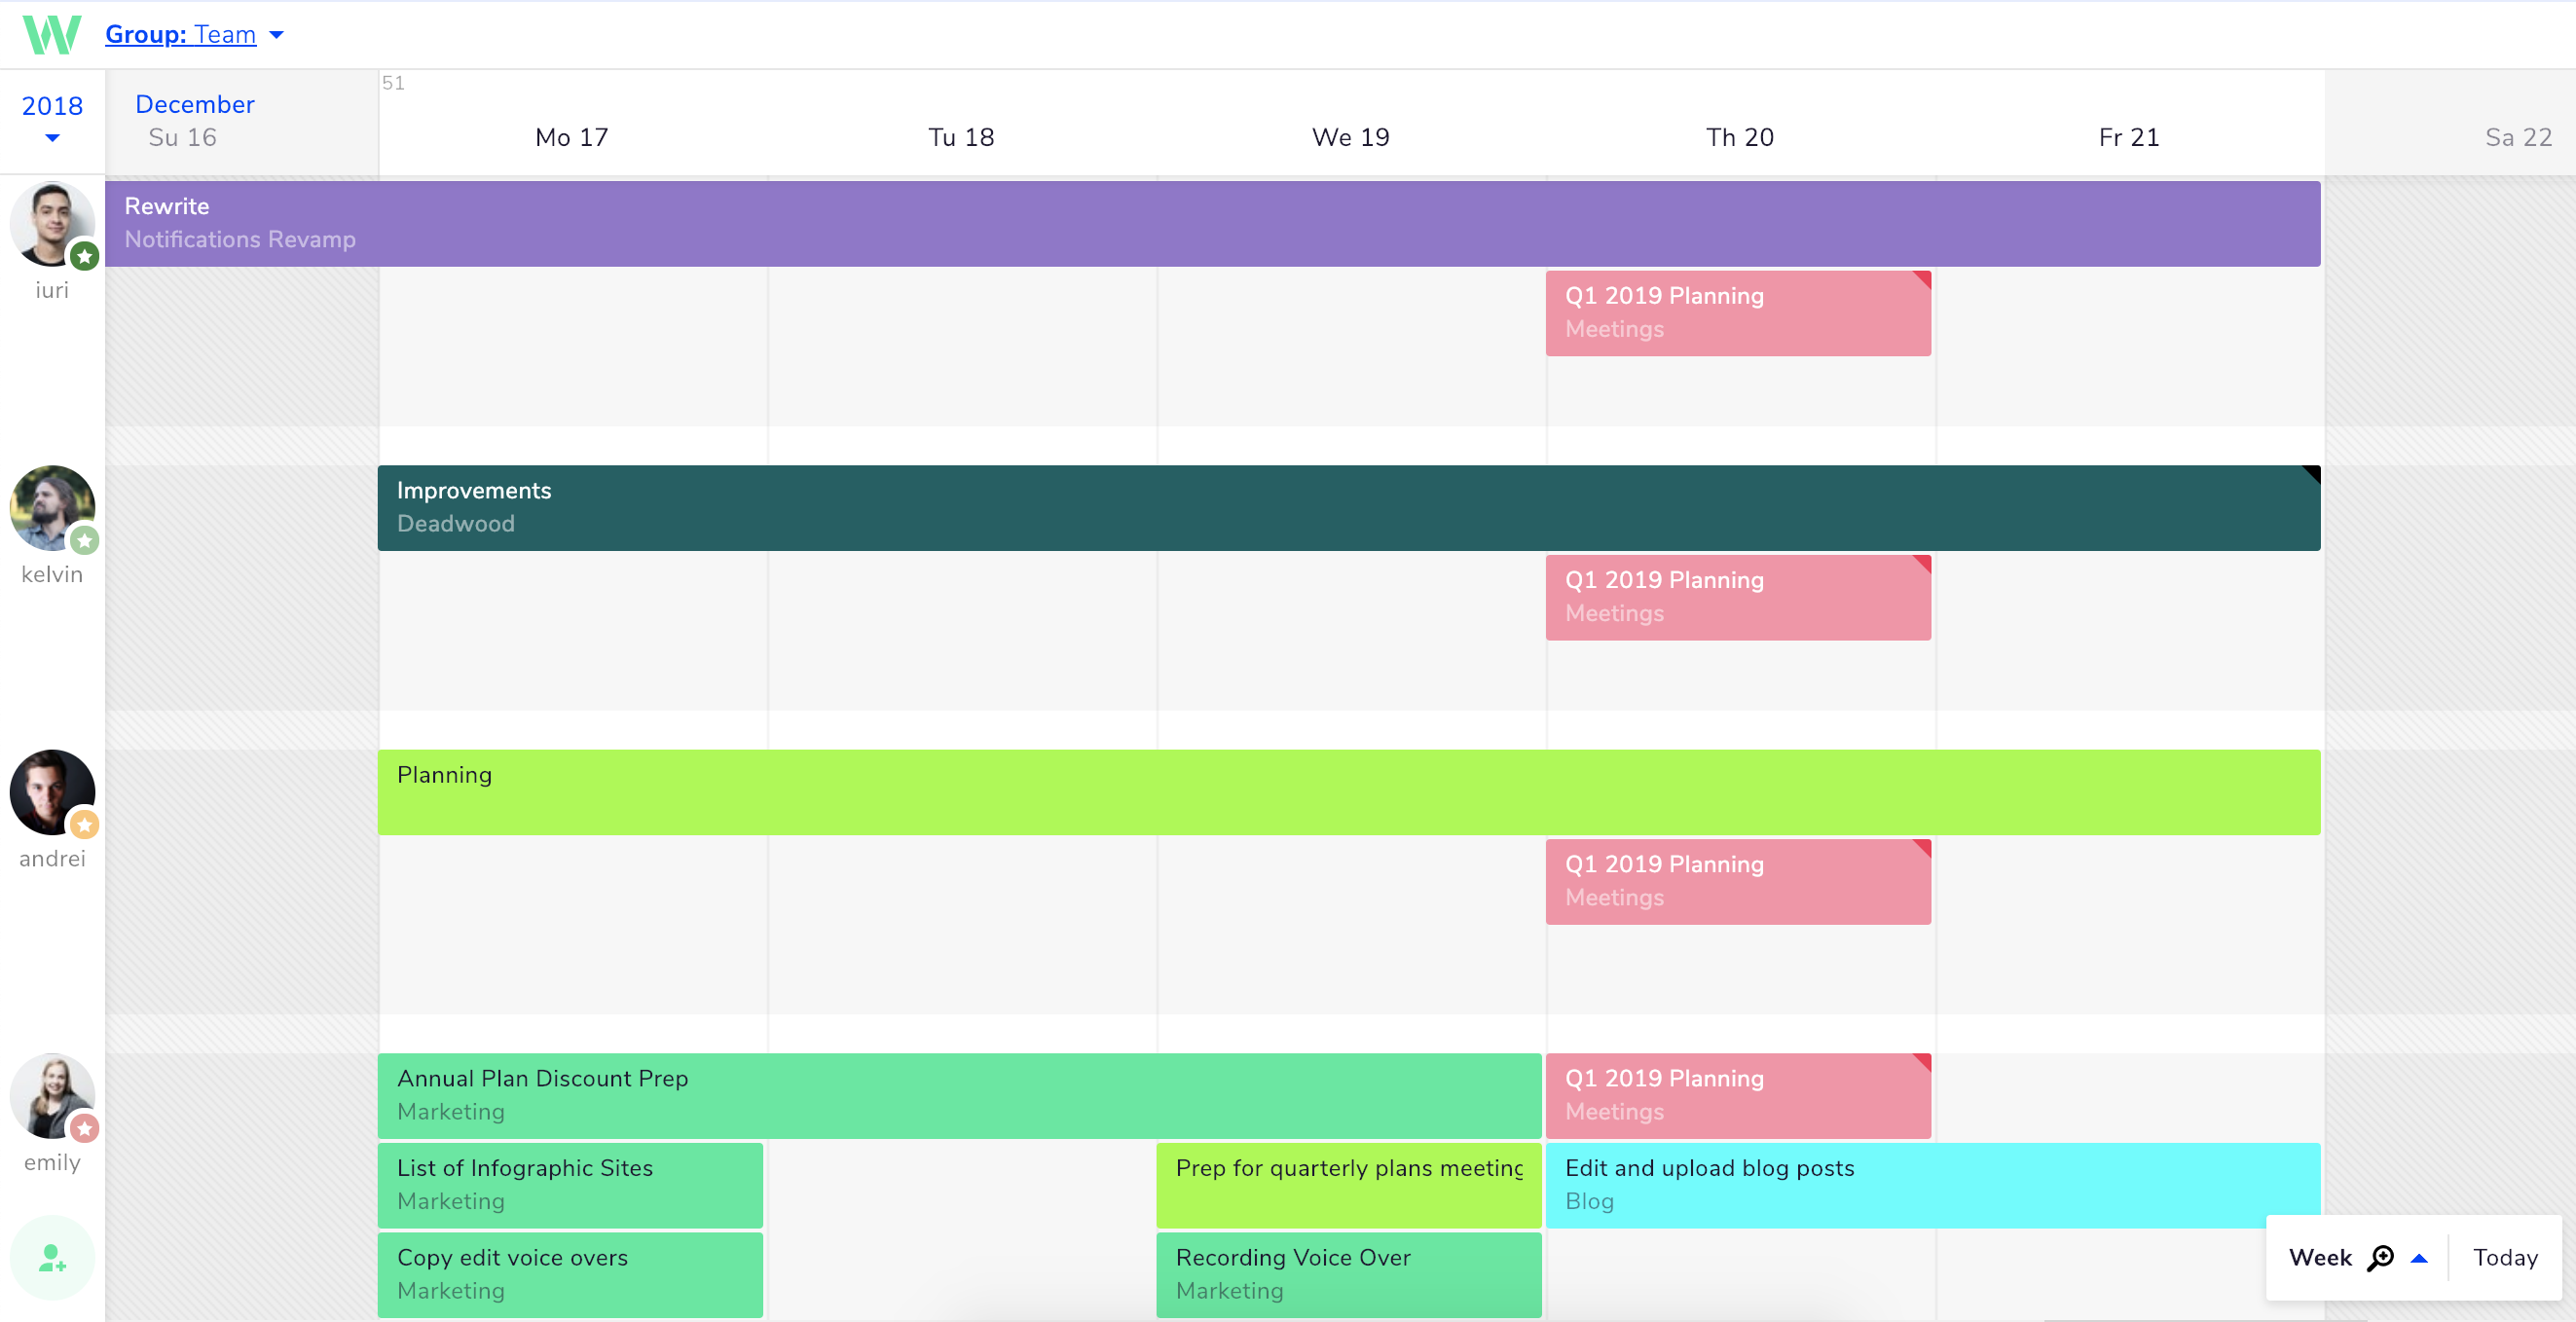 Add a business meeting to everyone's timeline in Teamweek.